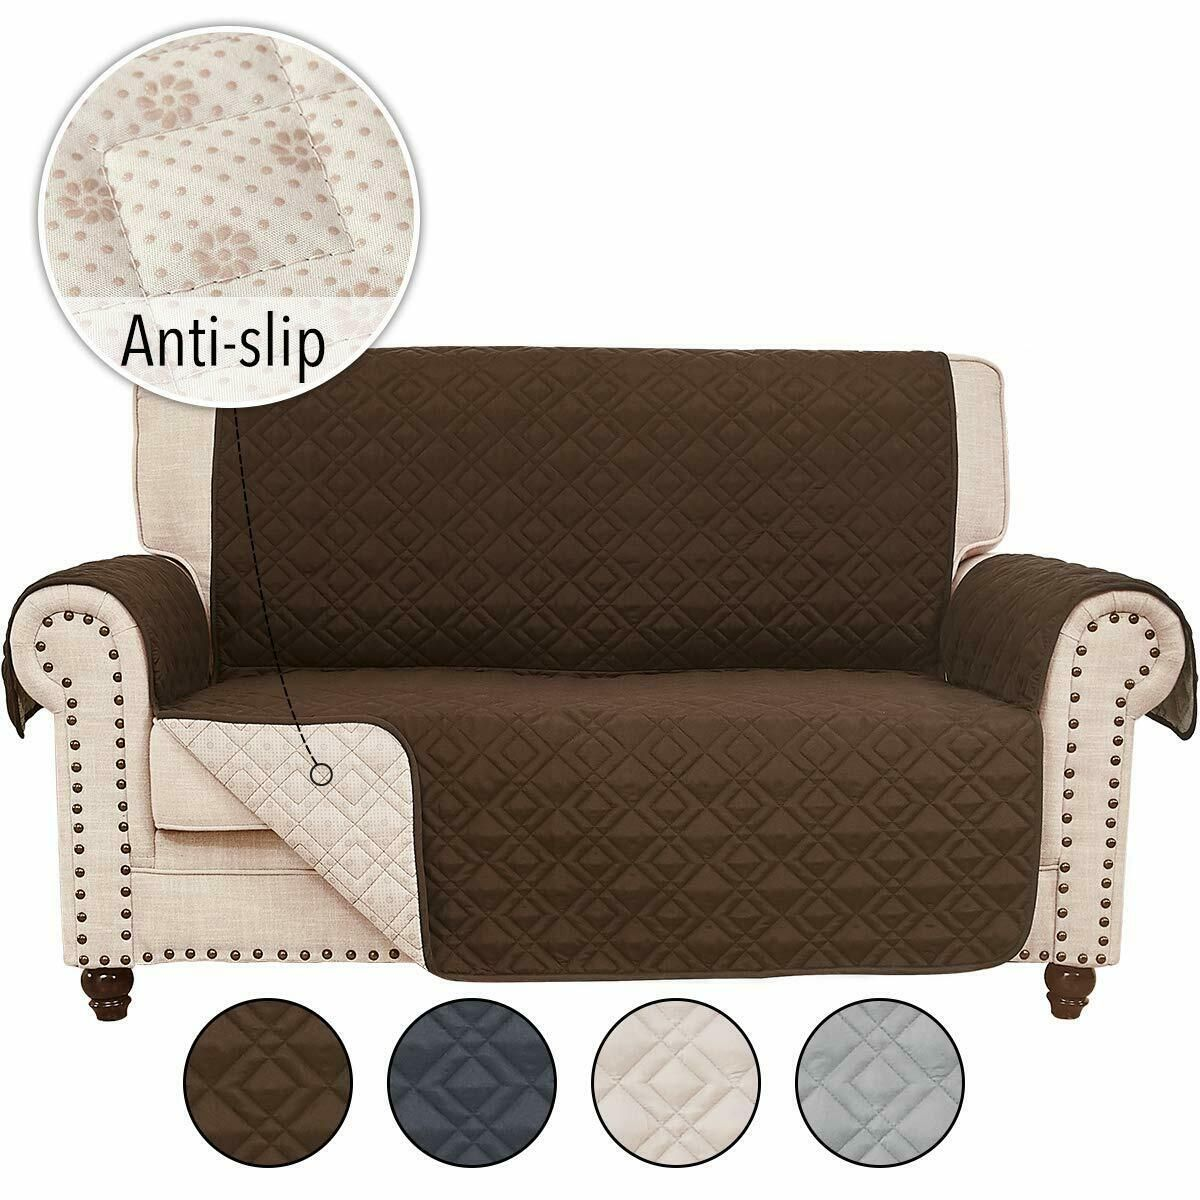 Anti Slip Sofa Cover Chair Couch Slipcover Pet Dog Kids Mat Furniture Protector Sofa Slipcover Ideas In 2020 Leather Sofa And Loveseat Loveseat Covers Leather Sofa